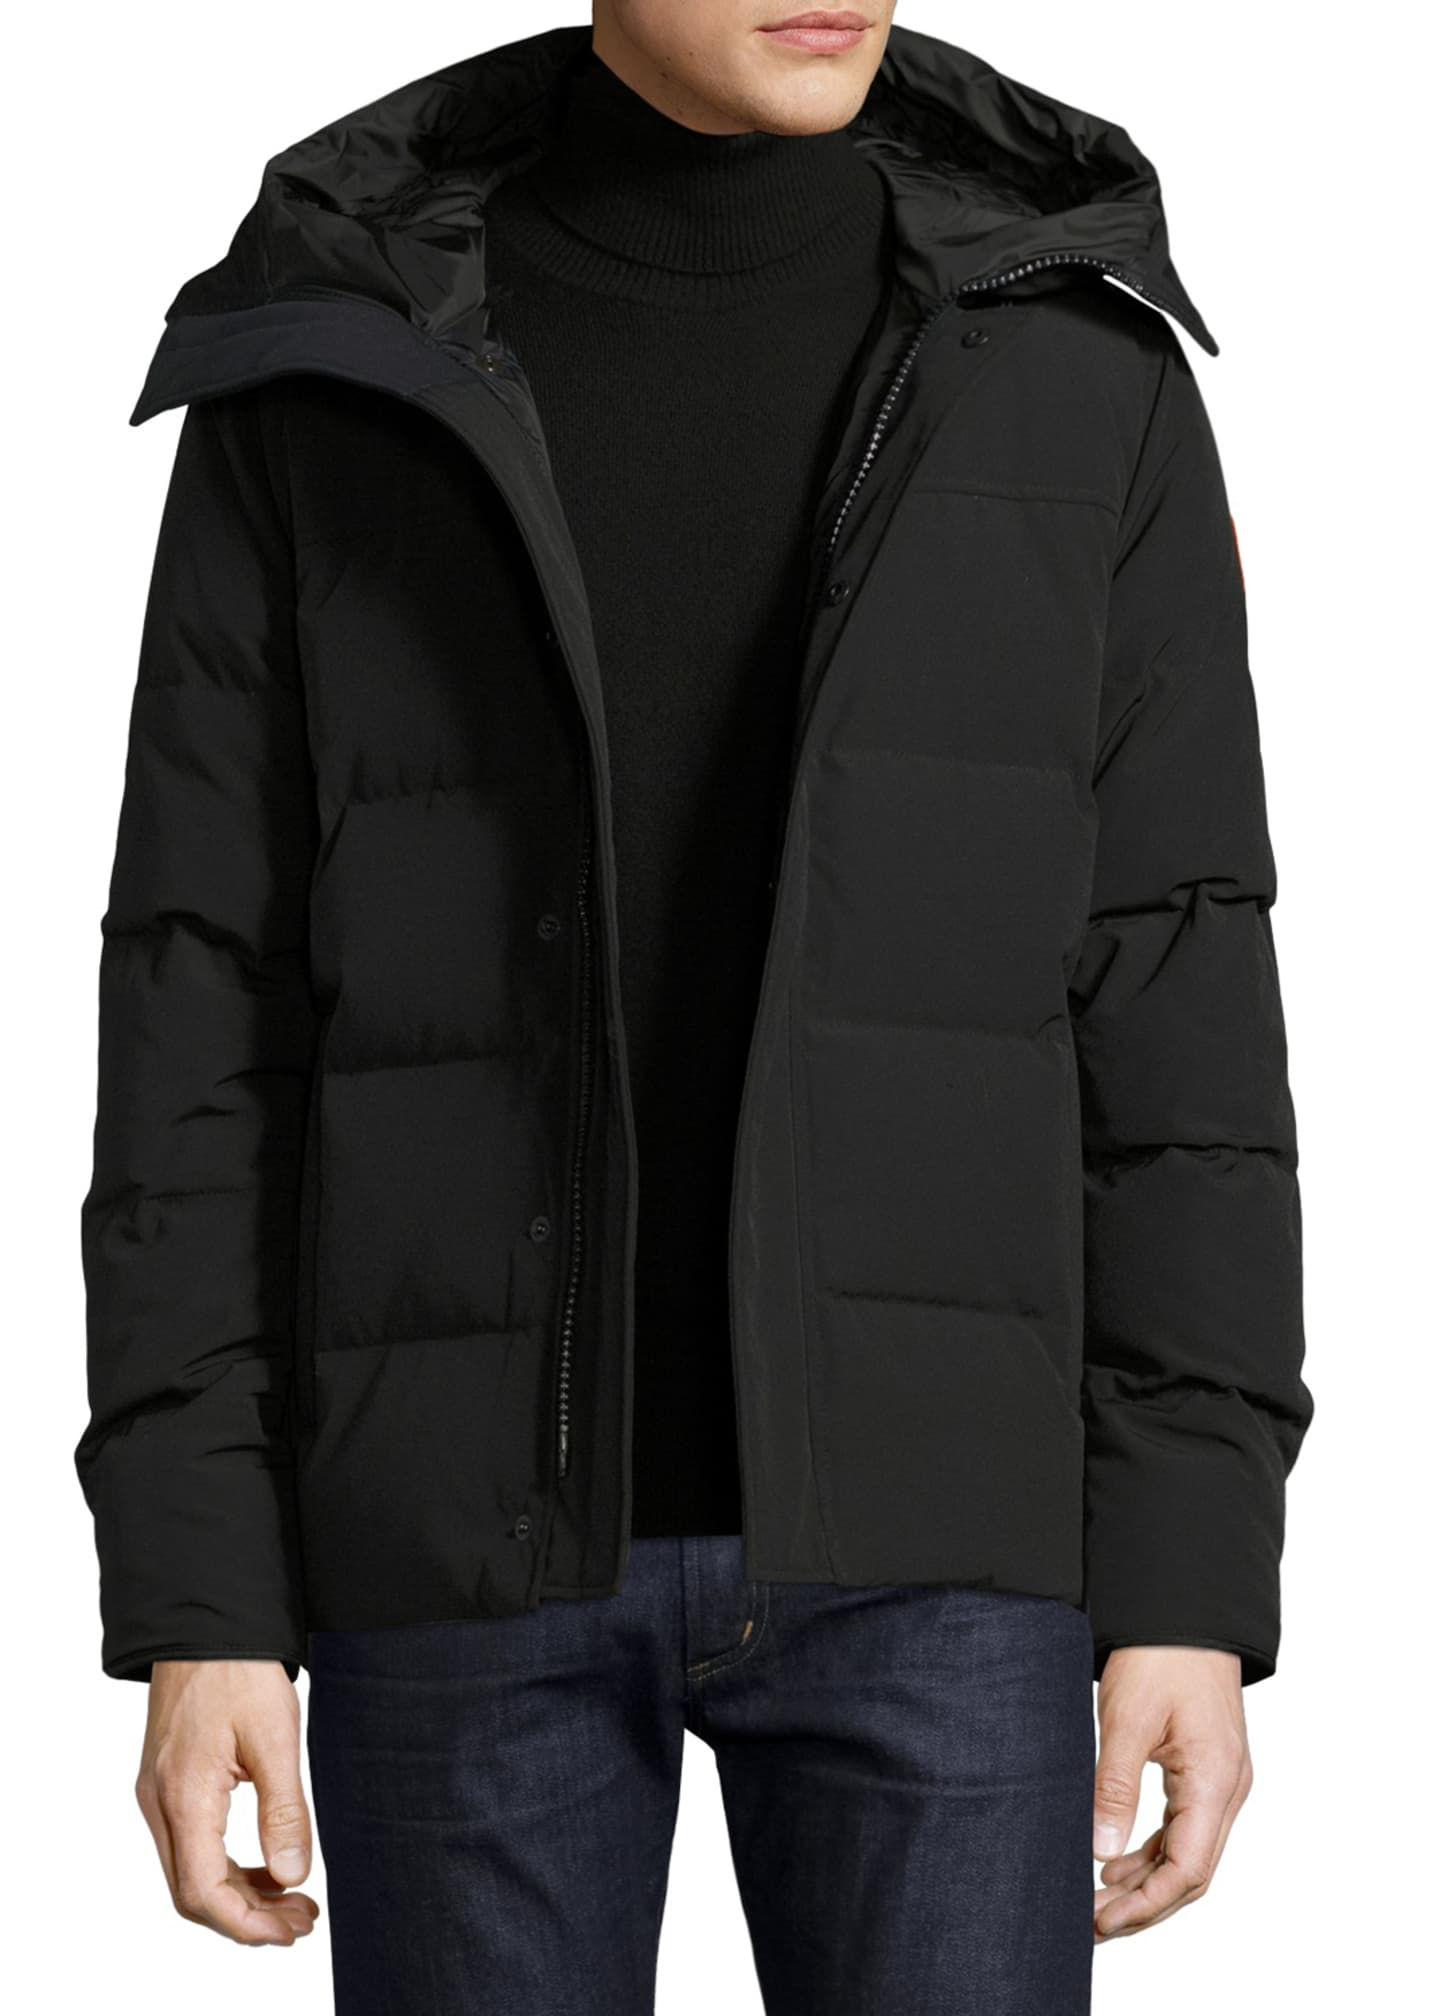 Canada Goose Macmillan Hooded Parka Coat, Black